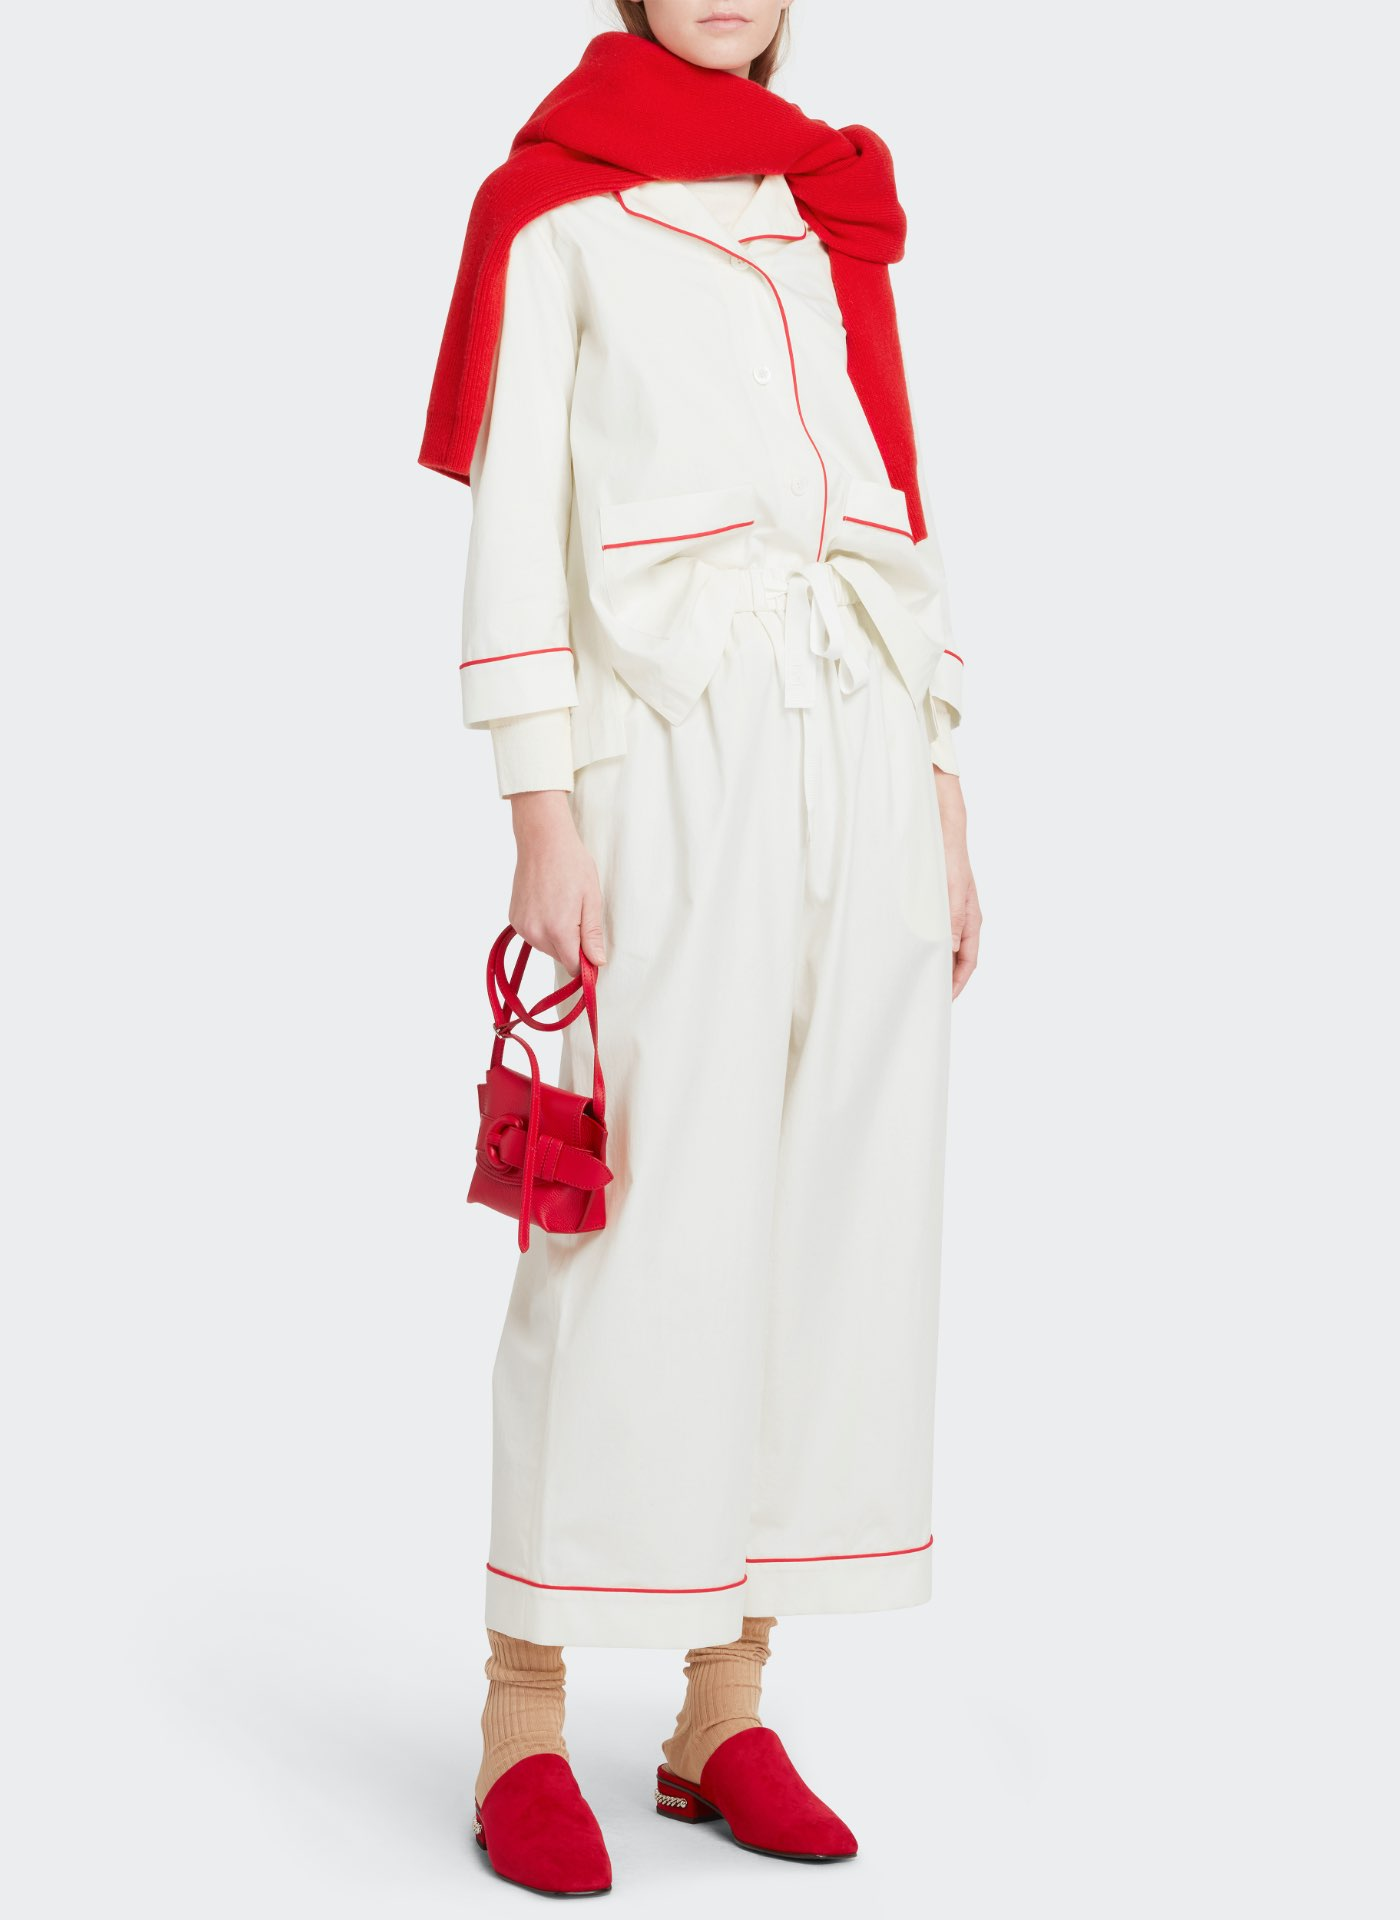 Womenswear model wearing white J&M suit with a red leather bag, red shoes and red scarf